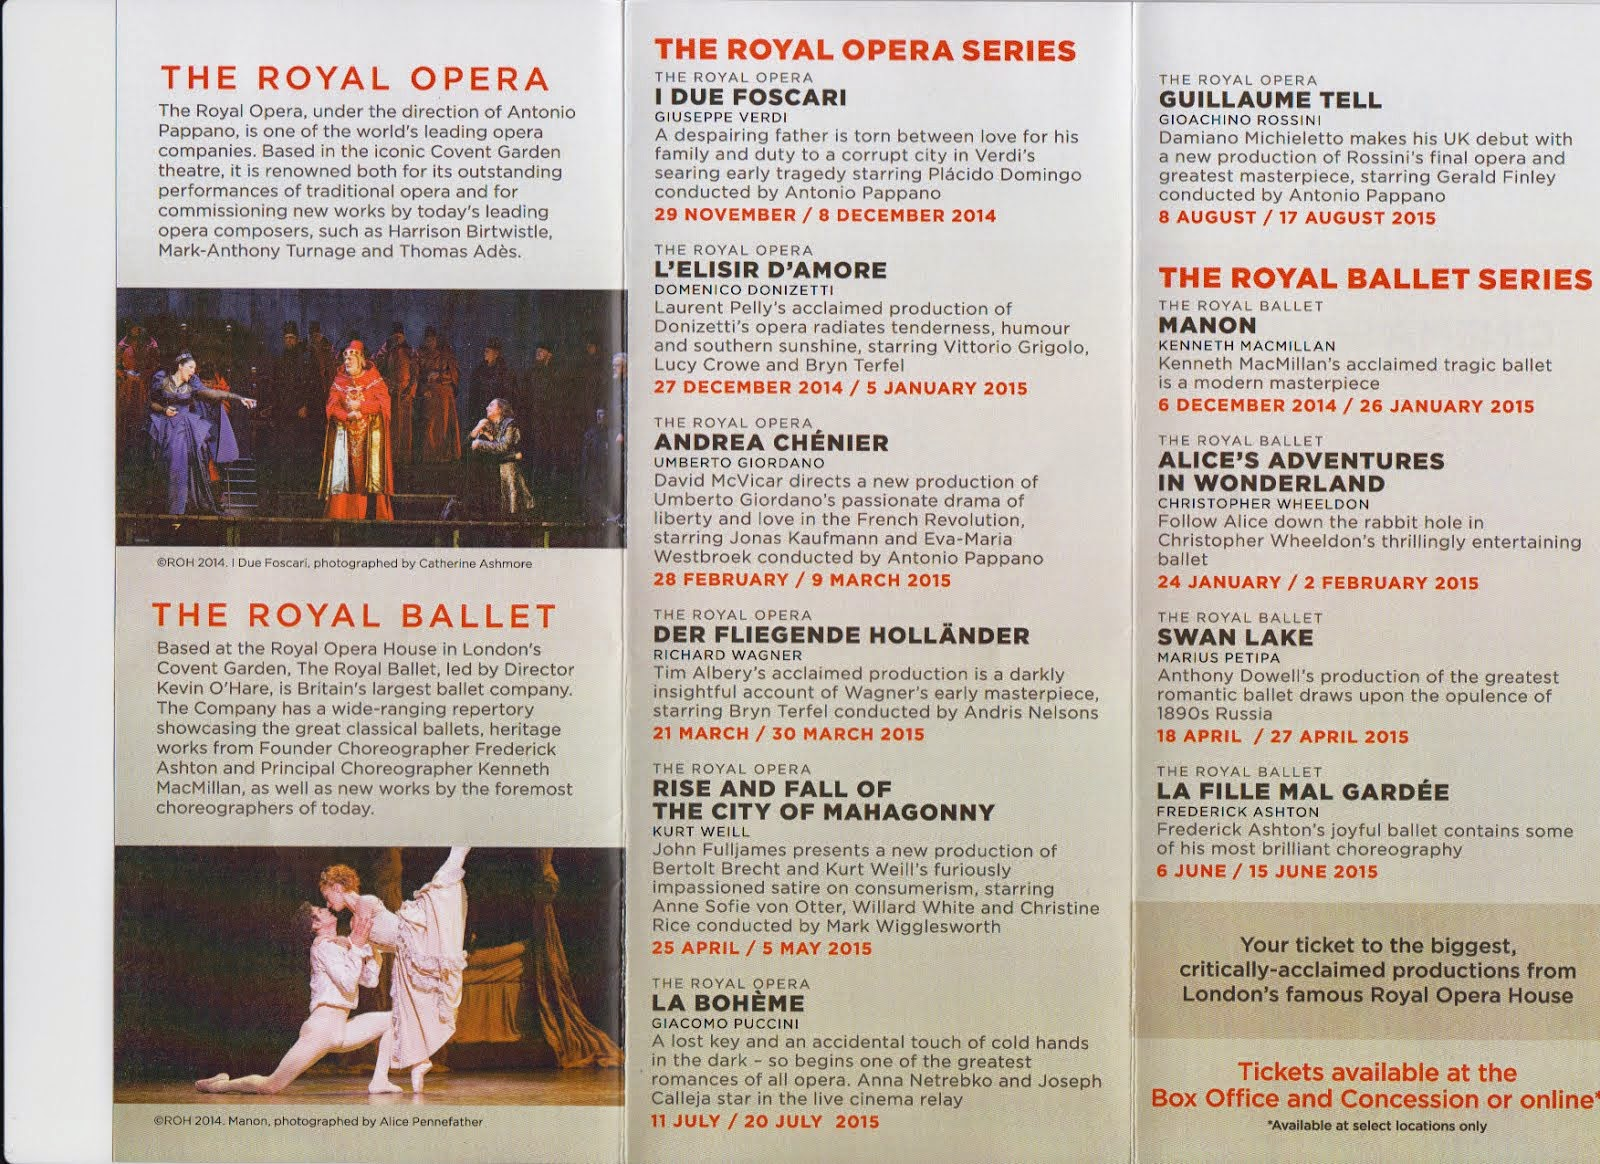 Ballet Schedule Columbia Theatre, Search to see larger posting